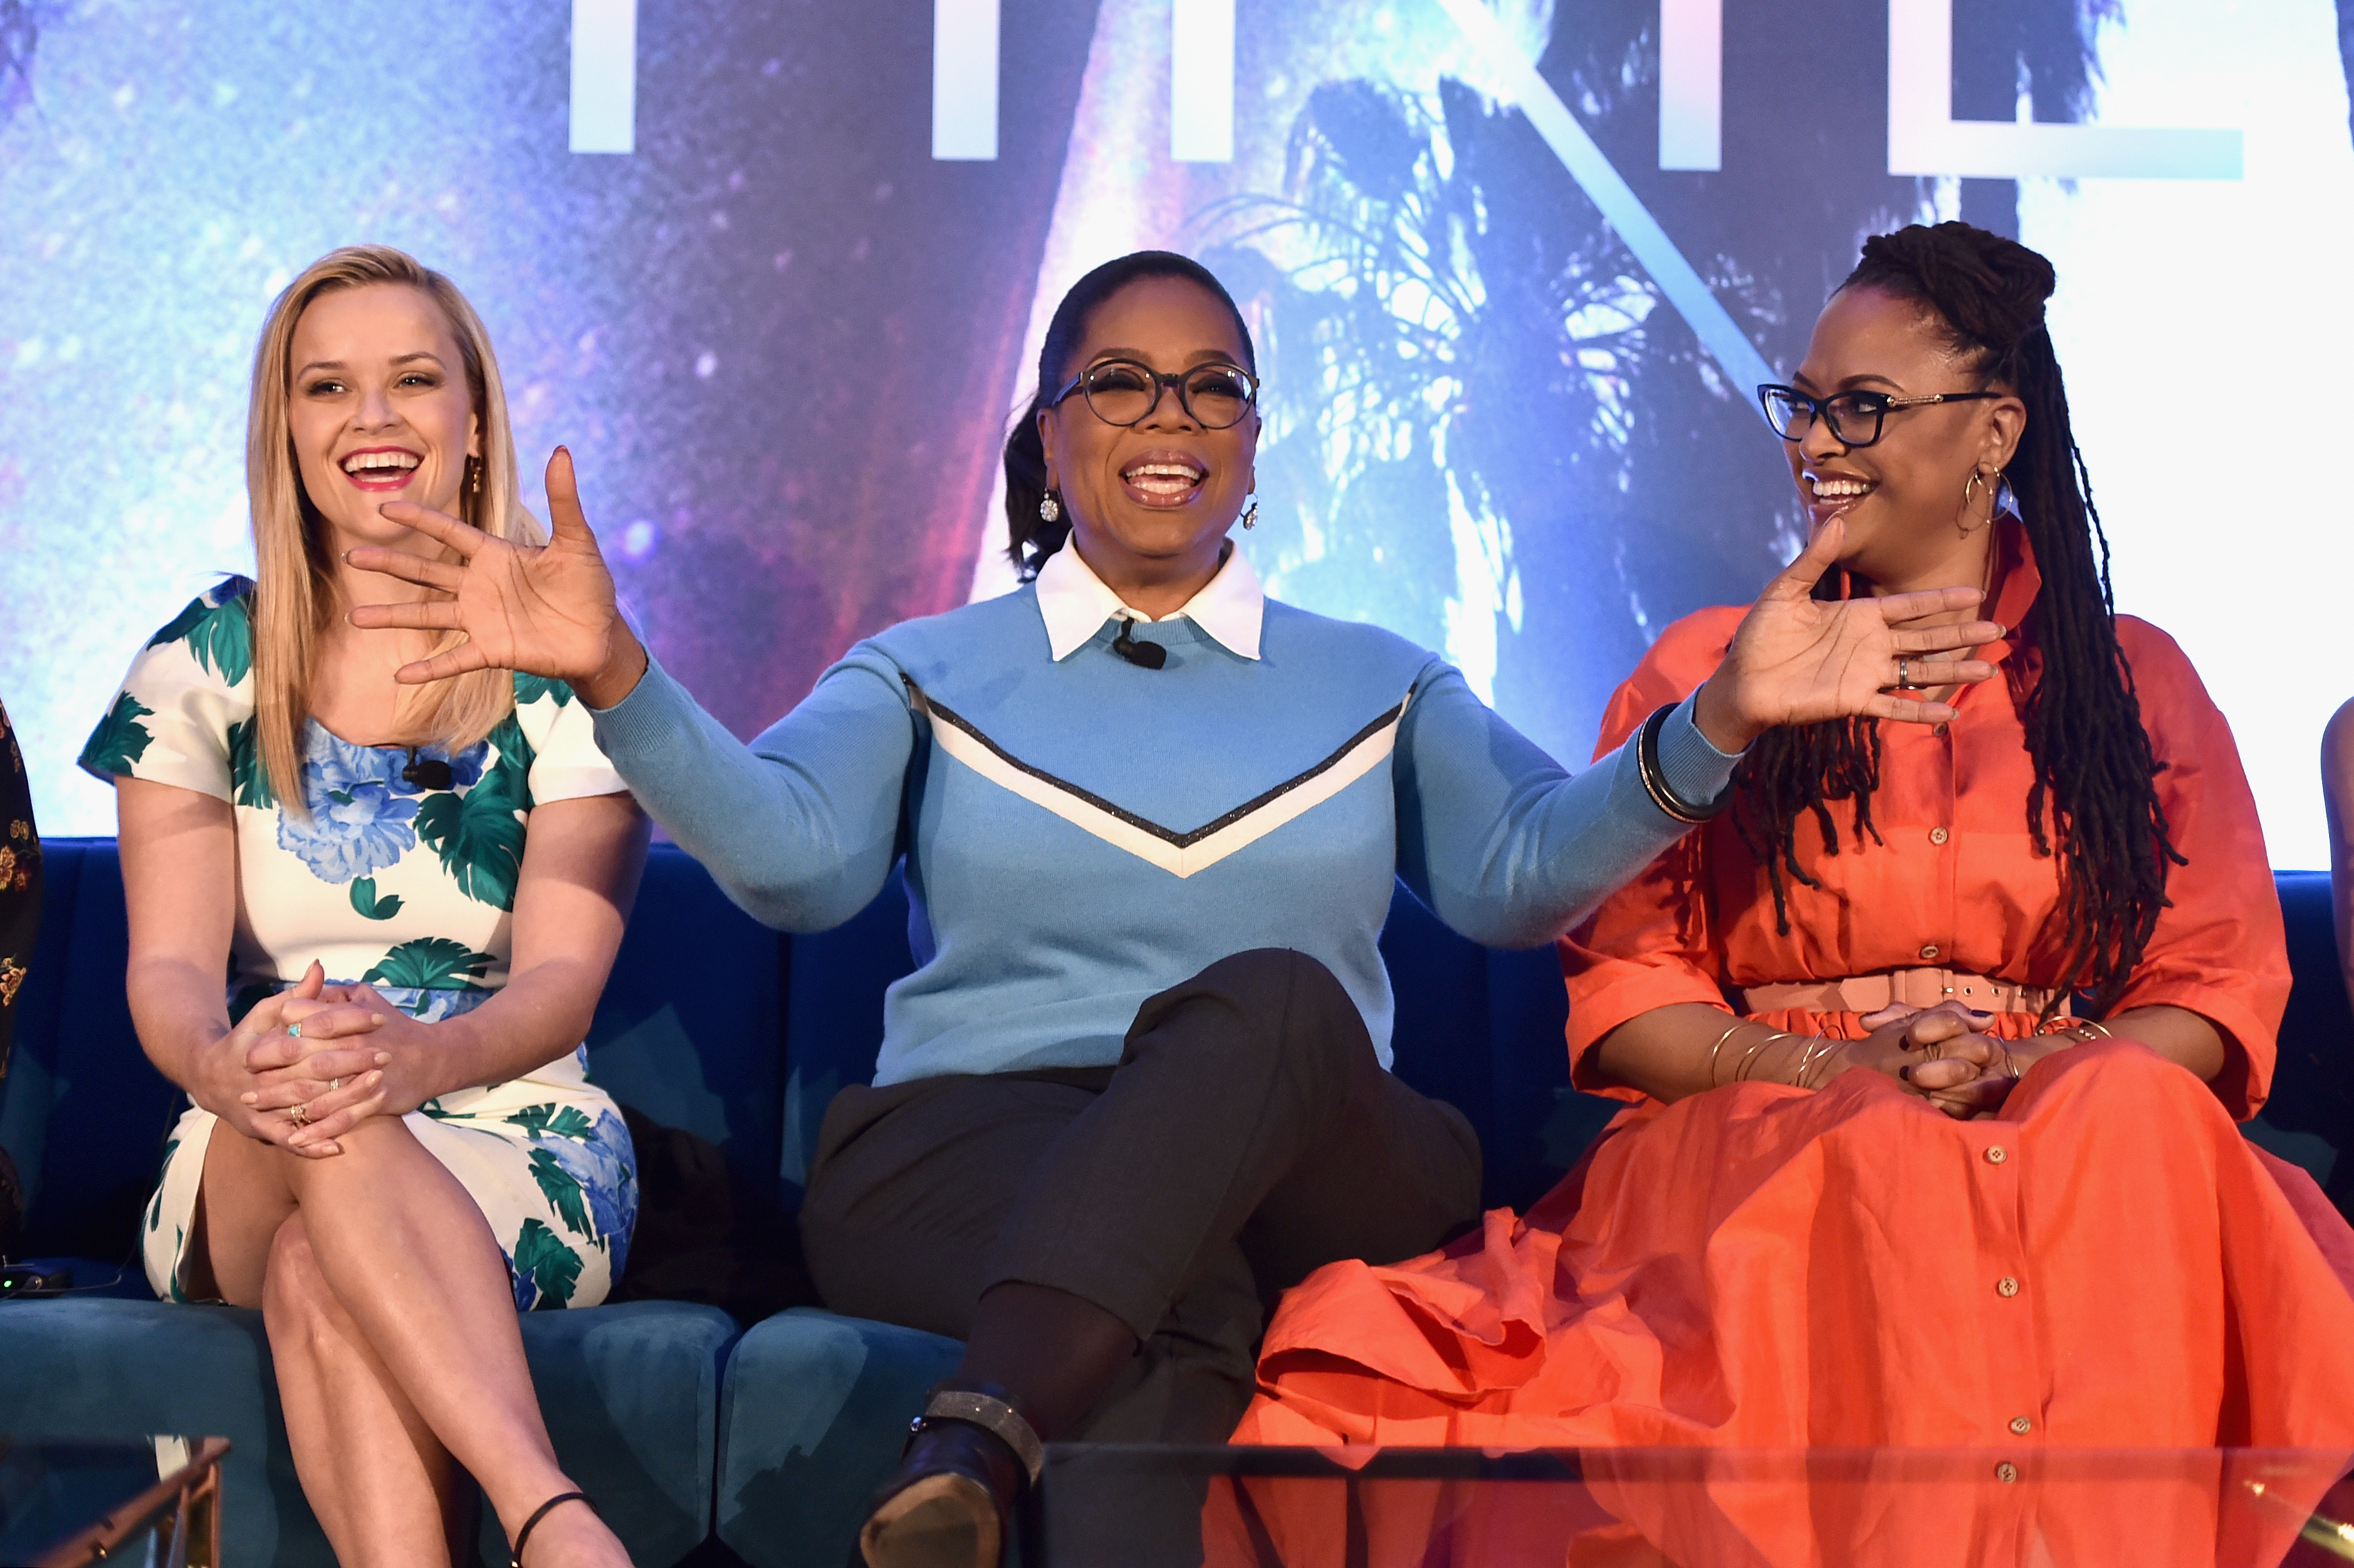 These 6 Epic Empowerment Quotes from the A Wrinkle in Time Cast are must reads!